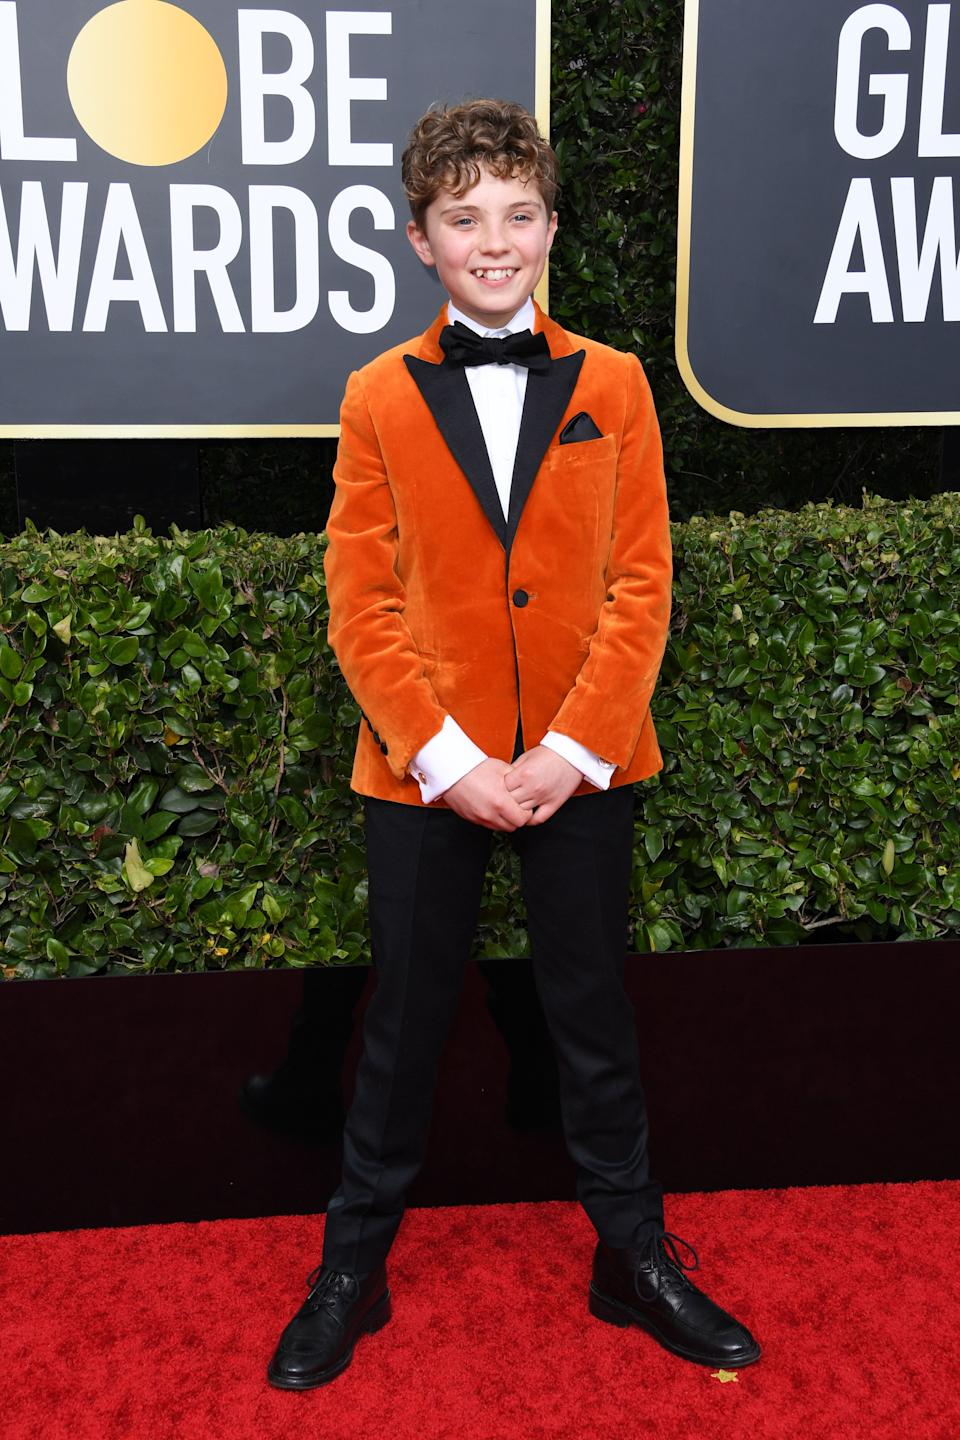 """Tomato-coloured suede is perfectly appropriate for a child actor. The fact that he talked about the thrill of <a href=""""https://twitter.com/JarettSays/status/1213965328587214848"""" target=""""_blank"""" rel=""""noopener noreferrer"""">kicking Hitler in the balls</a>? Even better."""